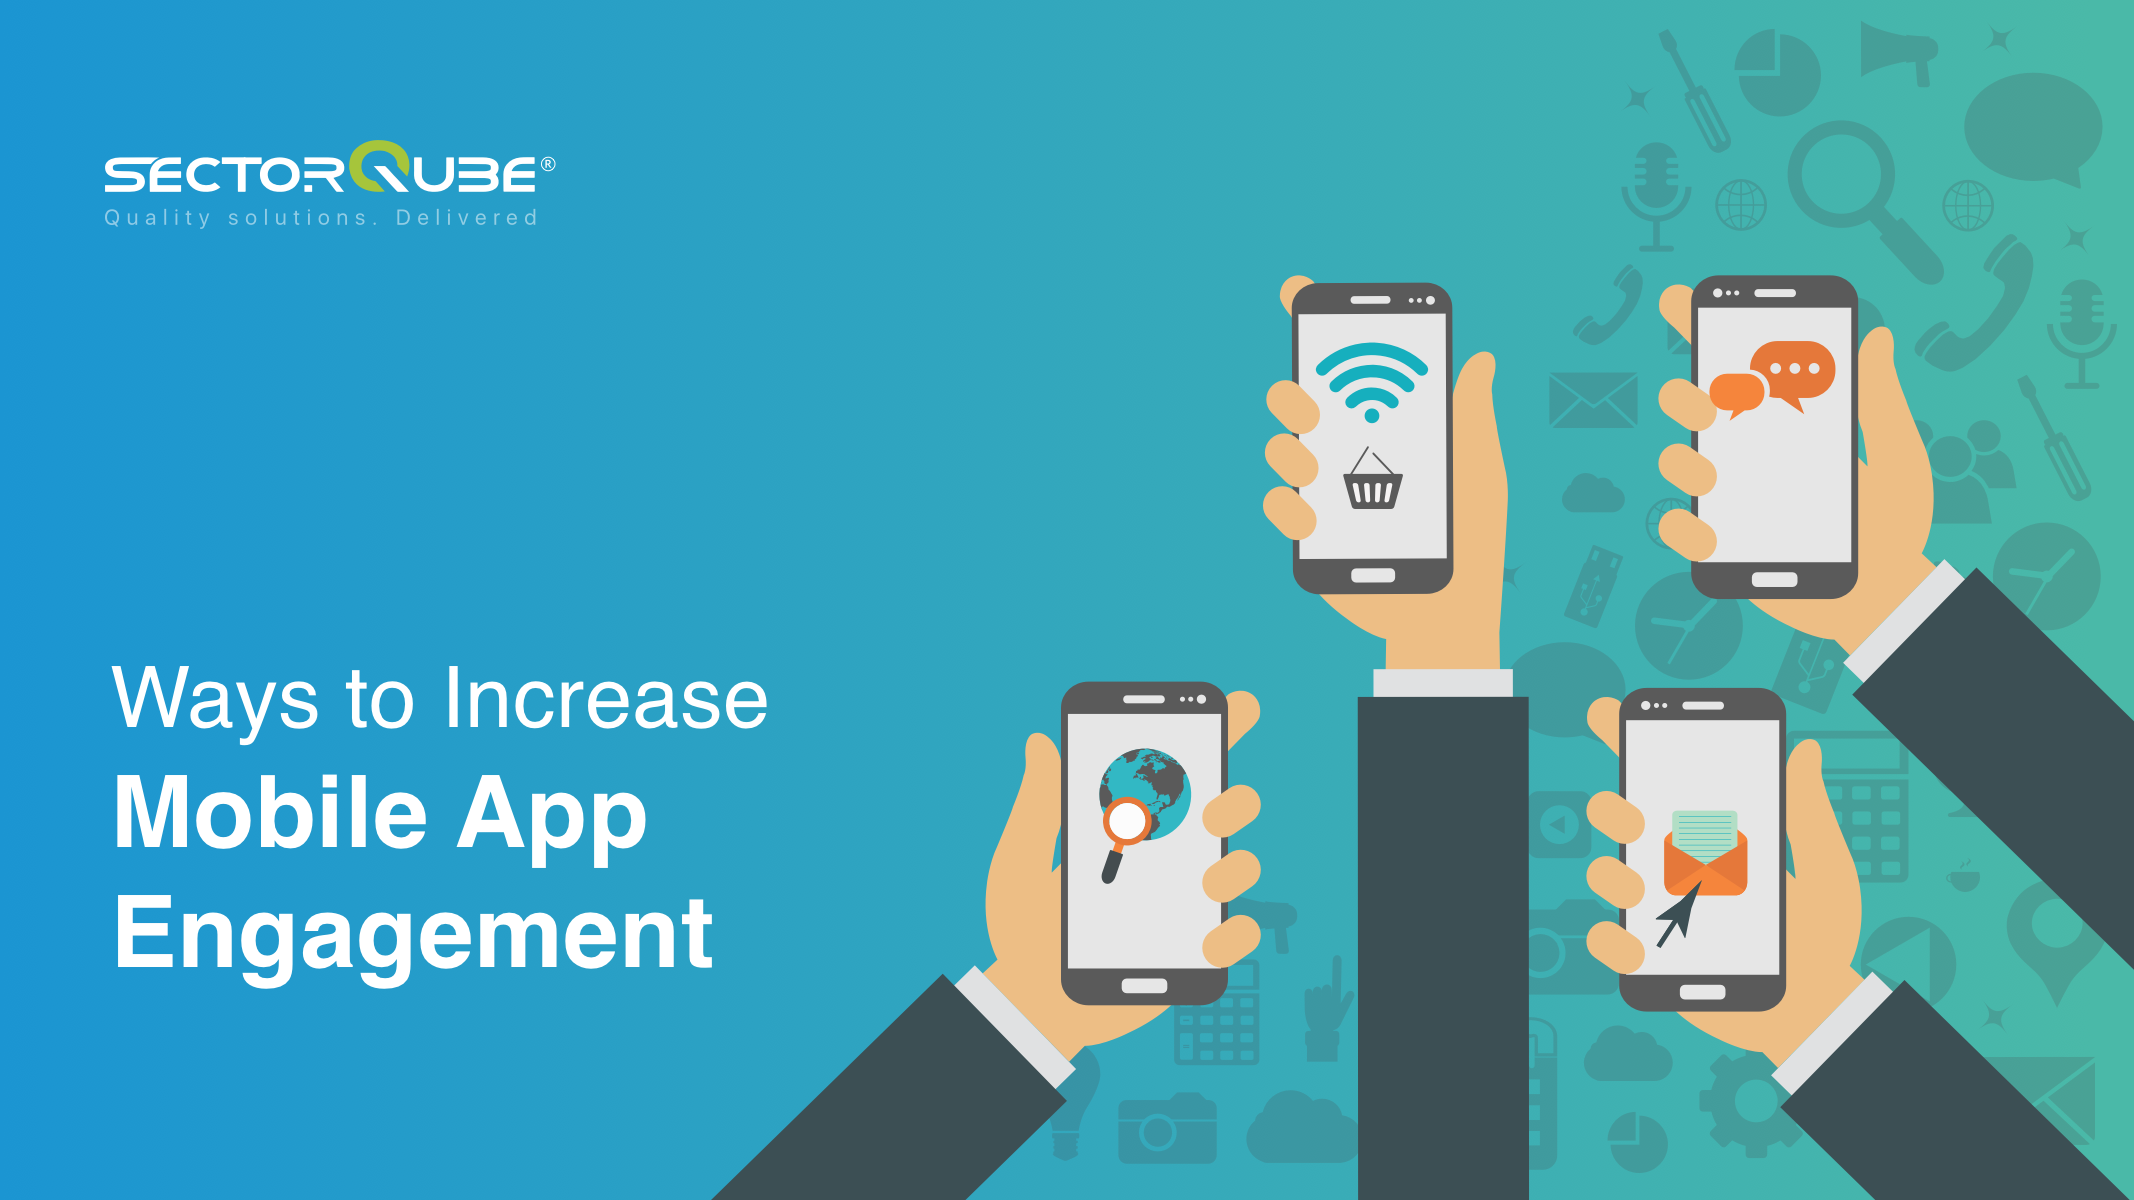 Ways to increase mobile app engagement